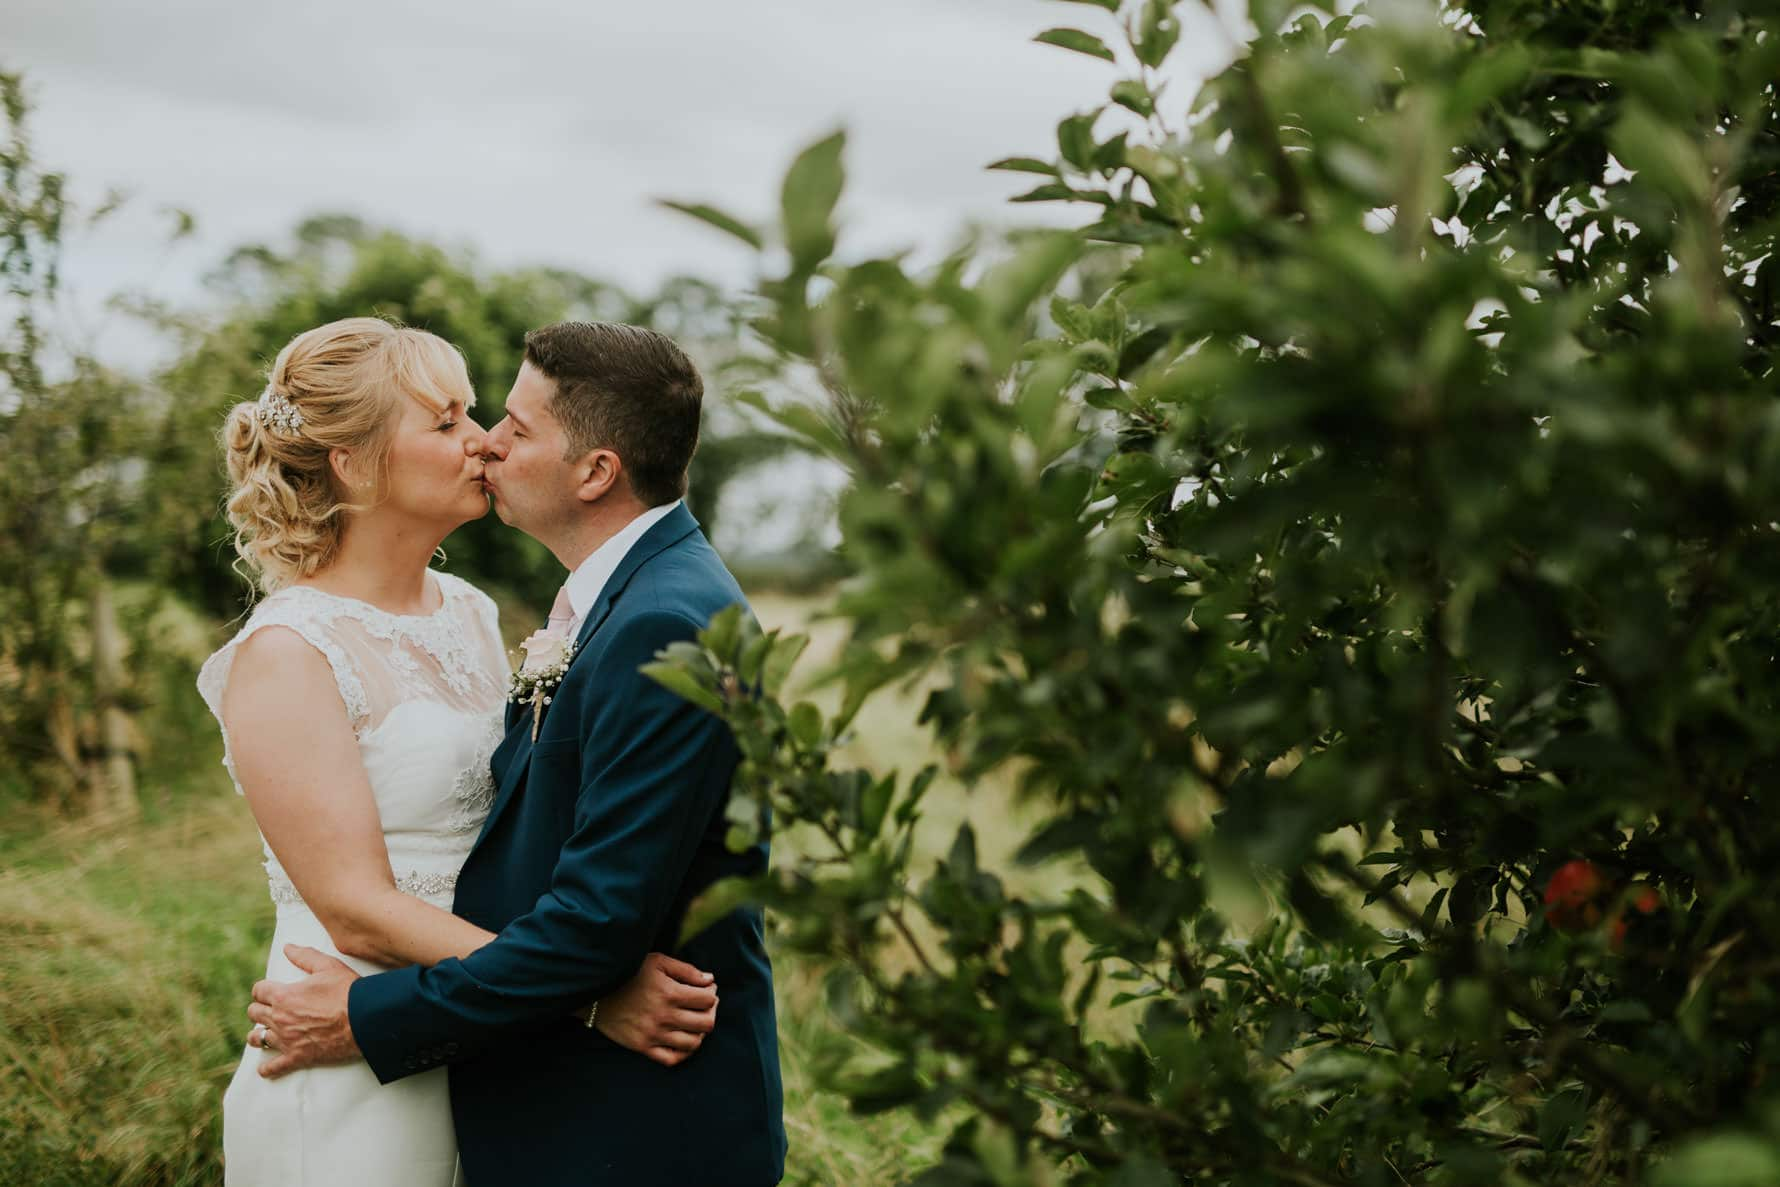 Bride and groom kissing next to an apple tree